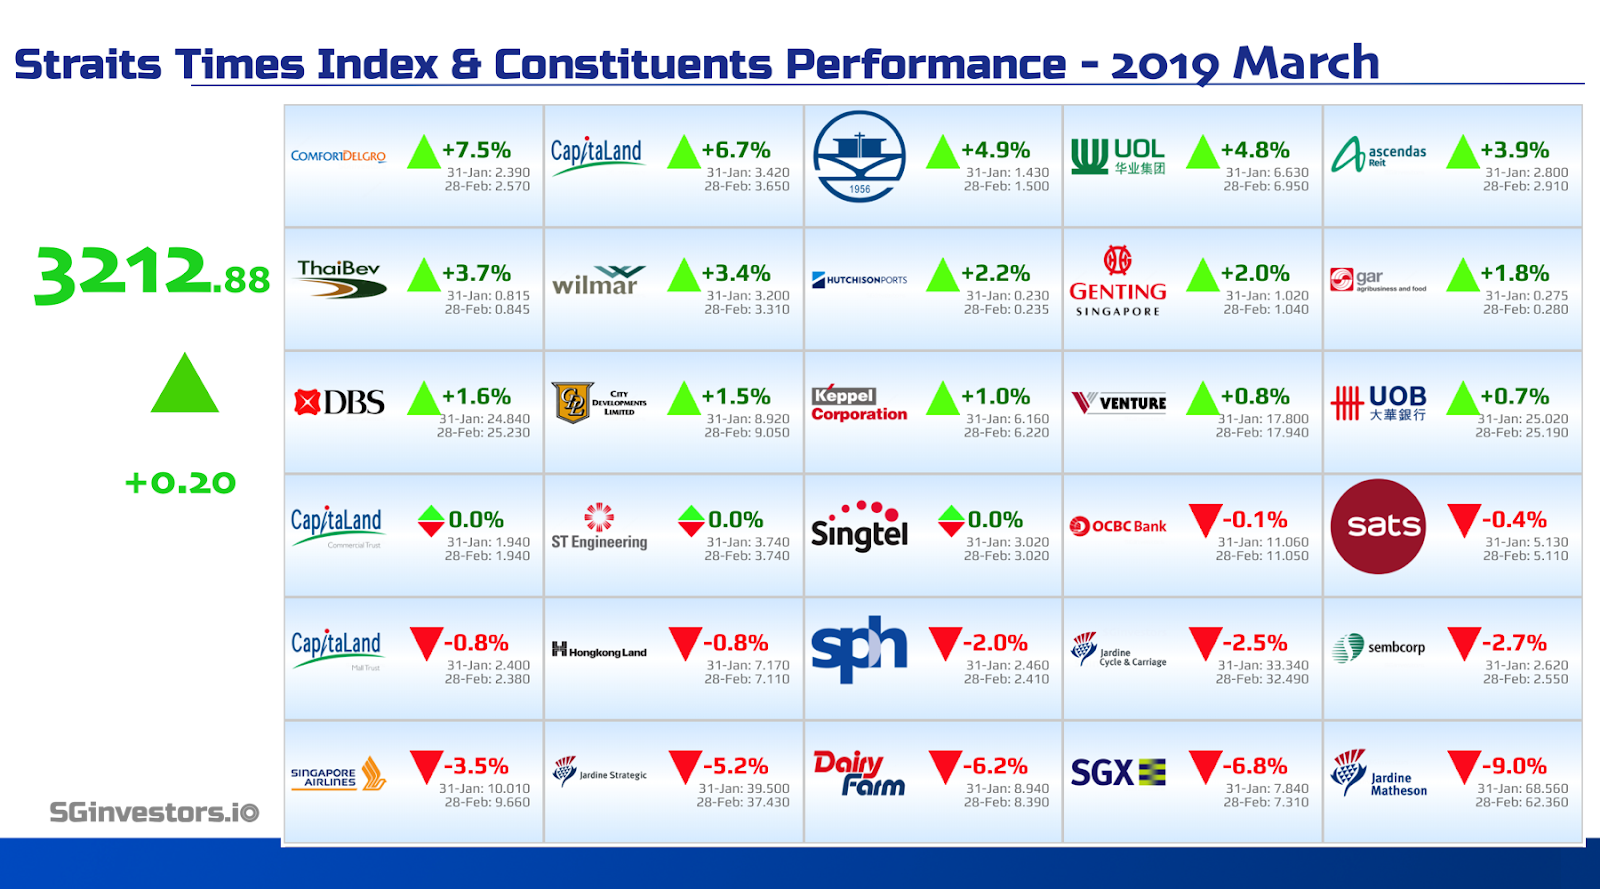 Performance of Straits Times Index (STI) Constituents in March 2019